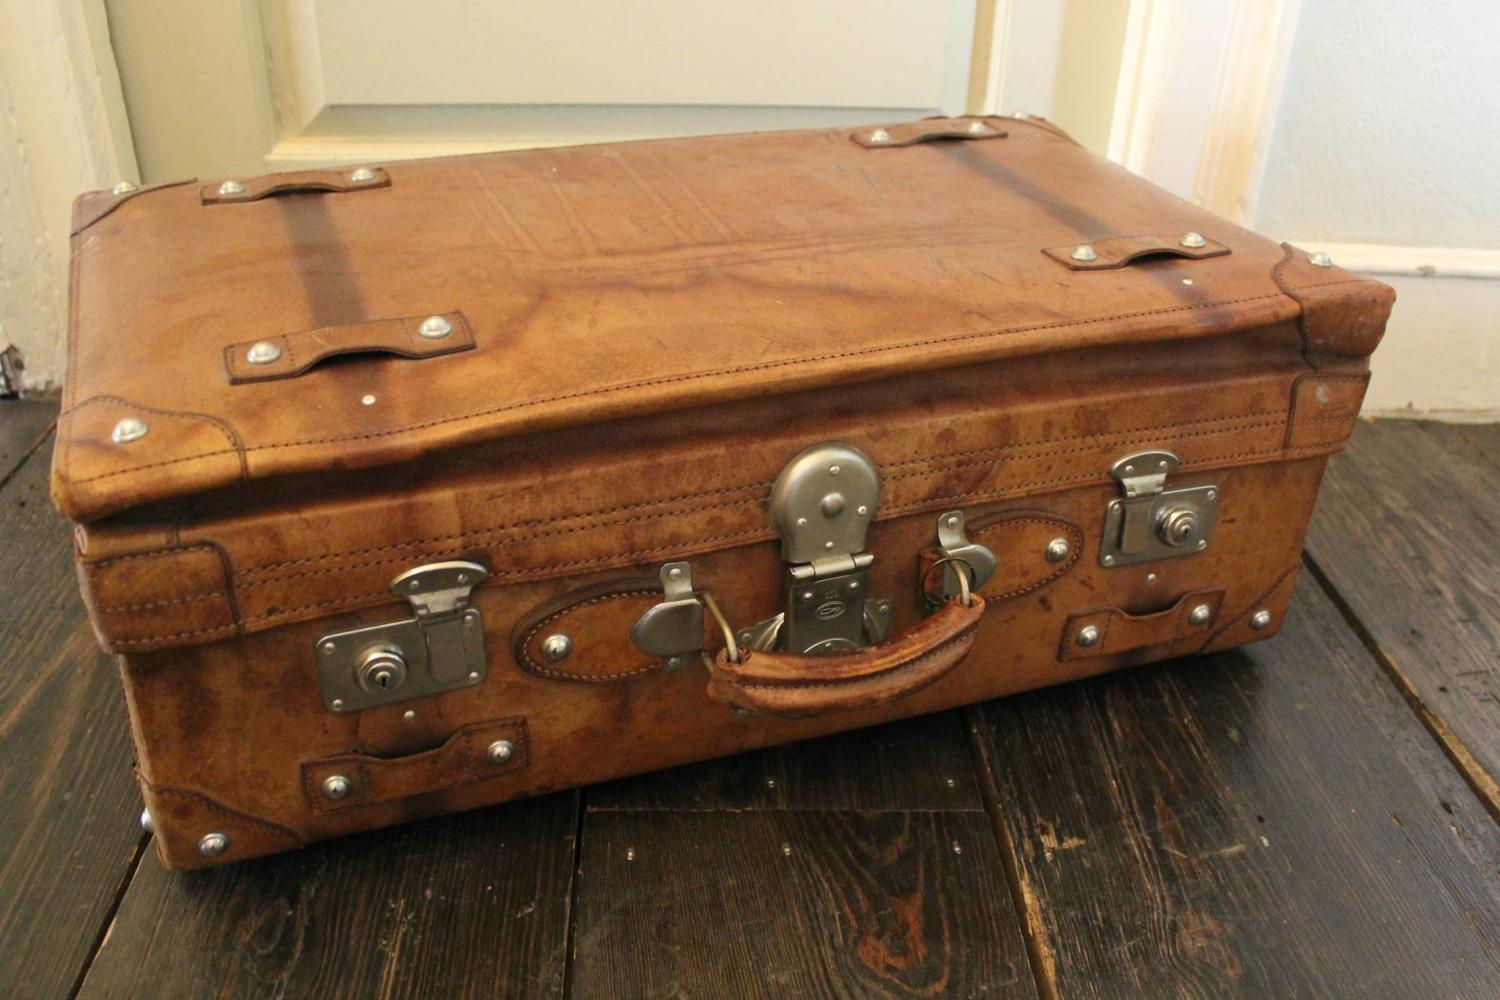 A Vintage Tan Leather Suitcase